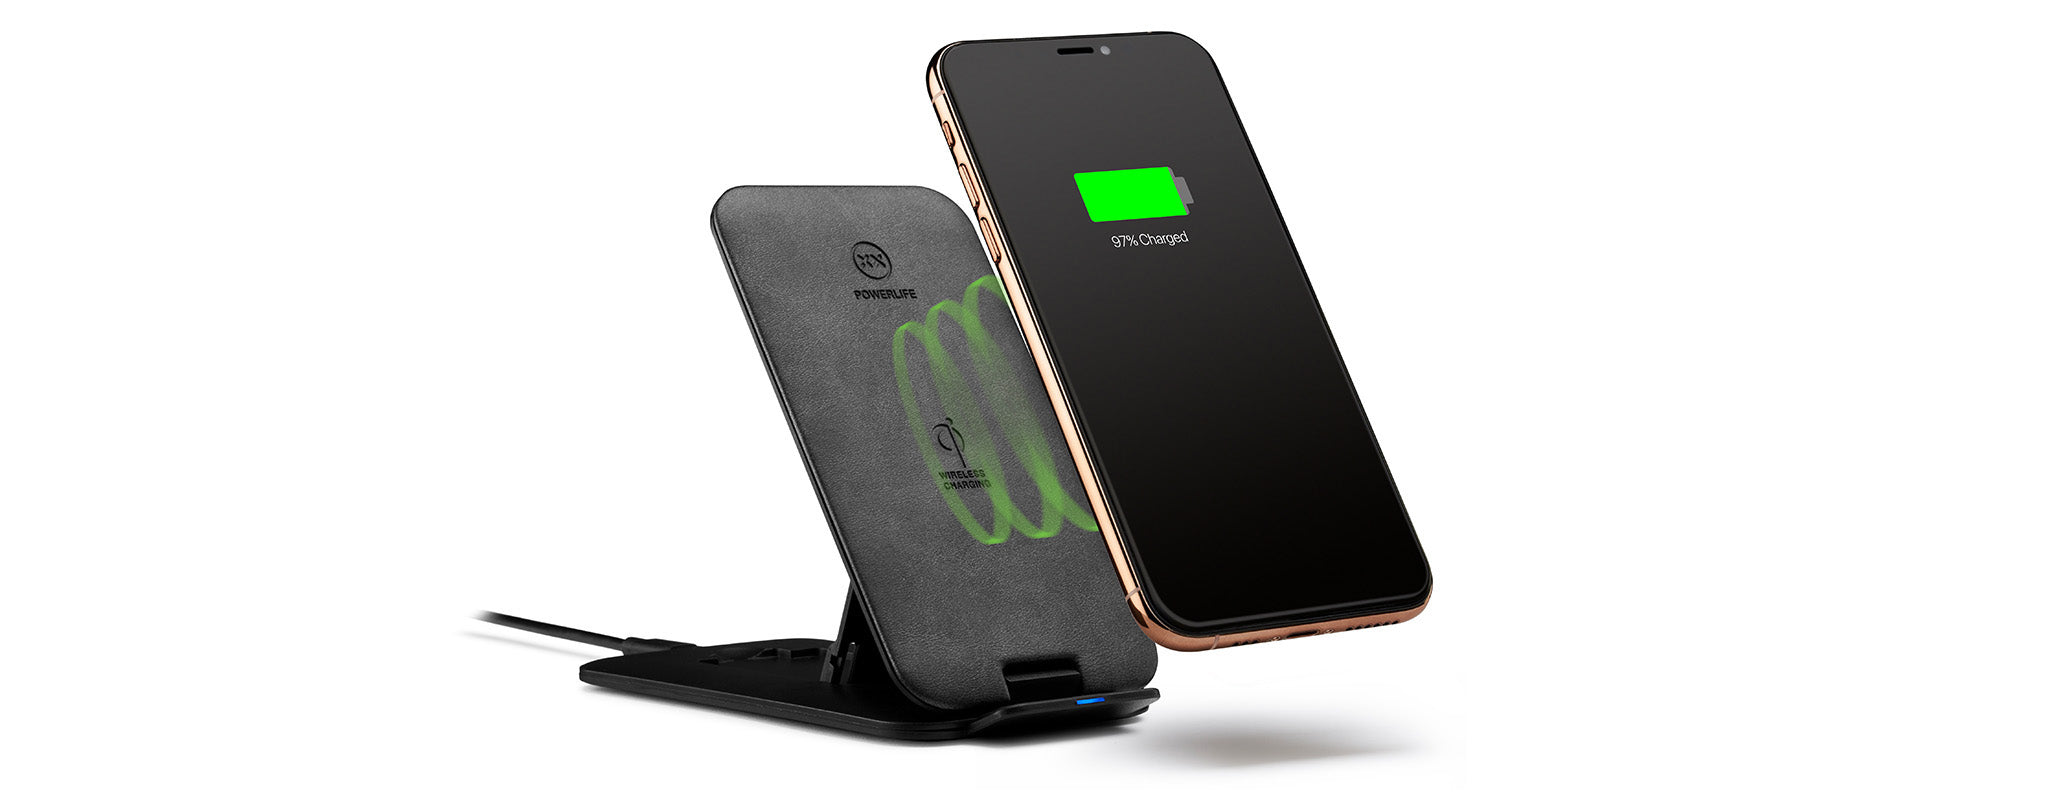 Chargestand wireless charger for iPhone XS